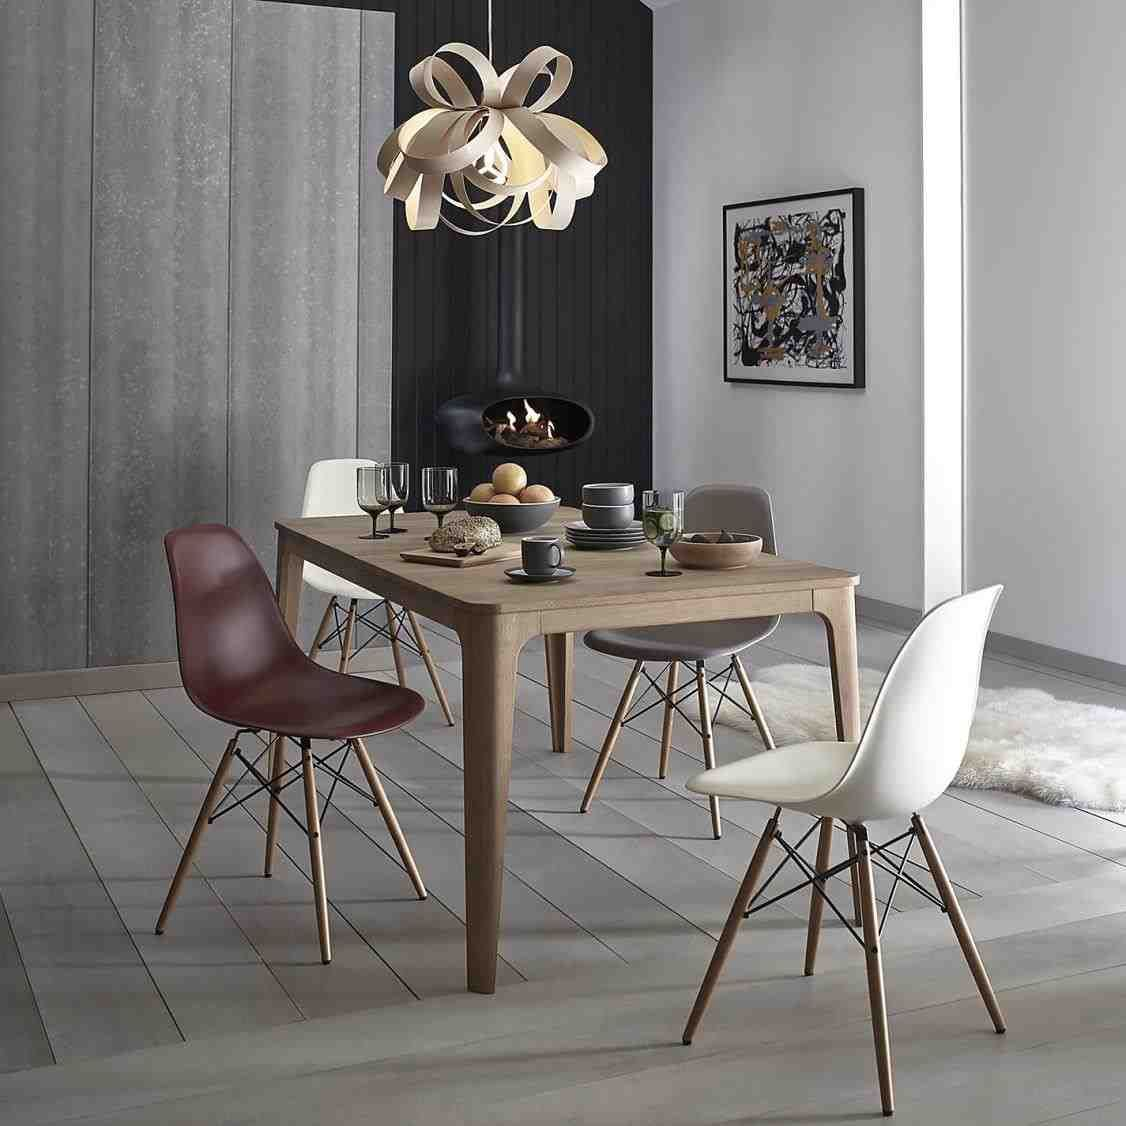 Buy Furniture Online Uk Cheap Furniture Online Uk Cheap Office Furniture Room Decorating Ideas Disc Dining Table Extendable Dining Table Plastic Dining Chairs